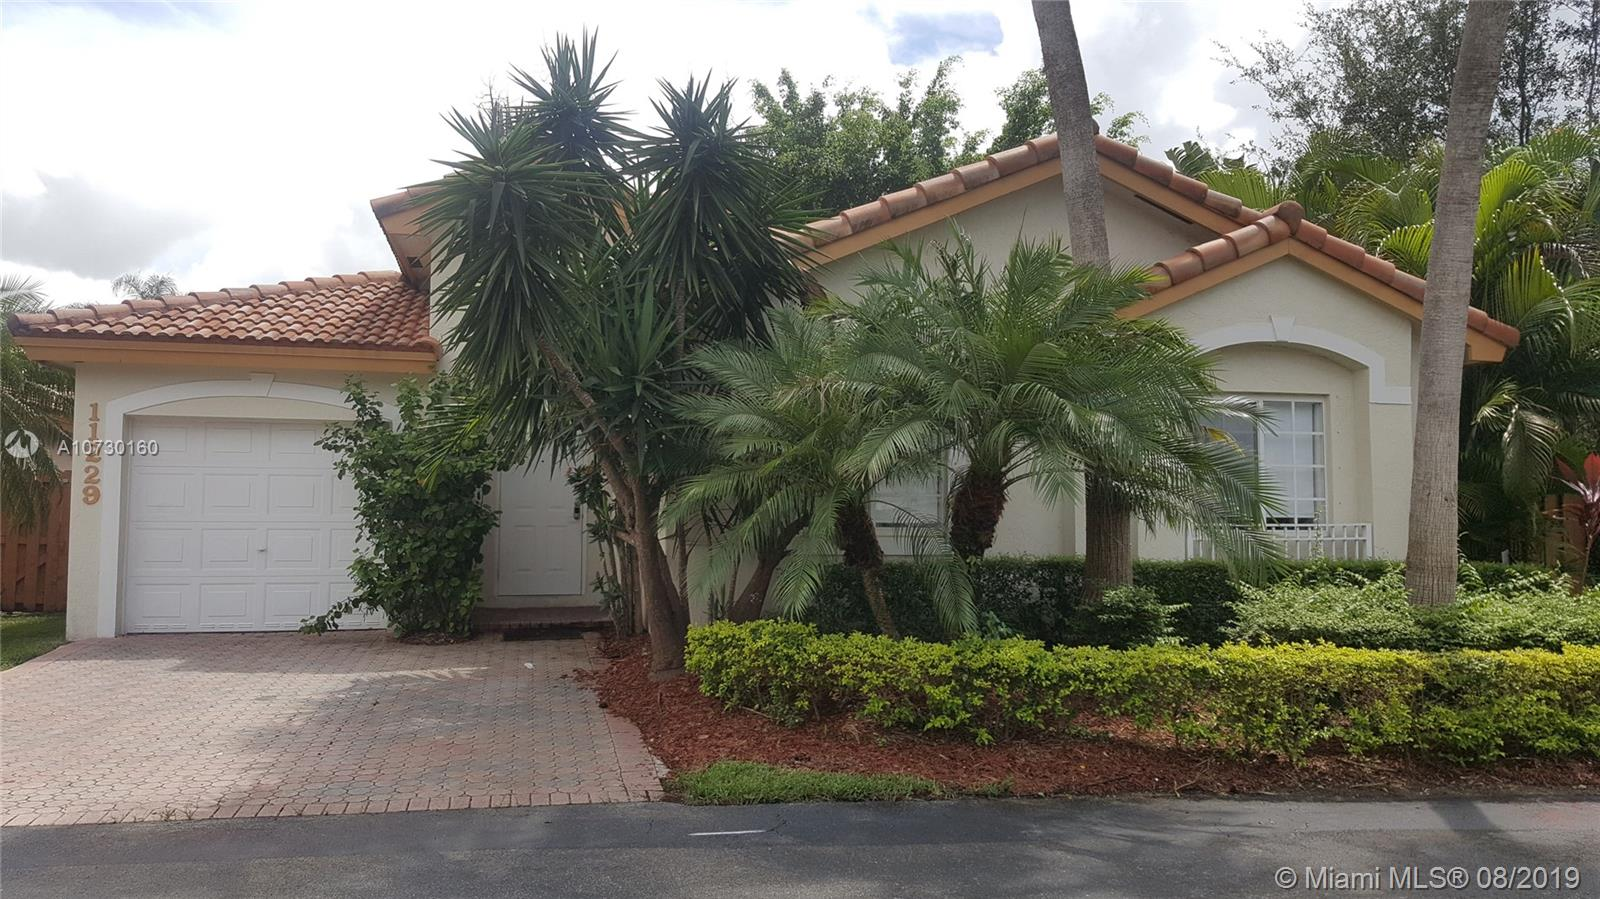 11229 NW 59th Ter  For Sale A10730160, FL